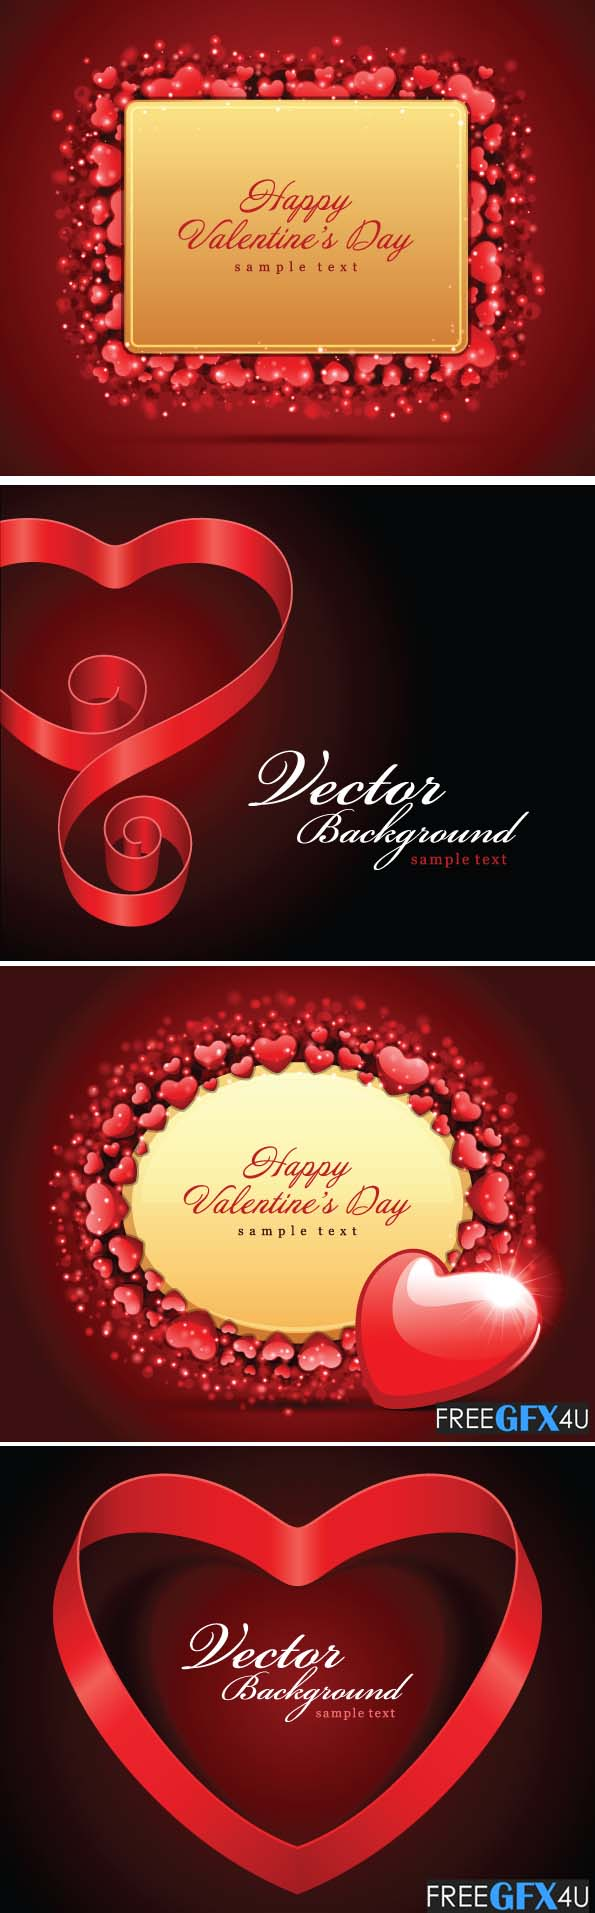 Vector Romantic Valentine's Day Heart shaped Cards